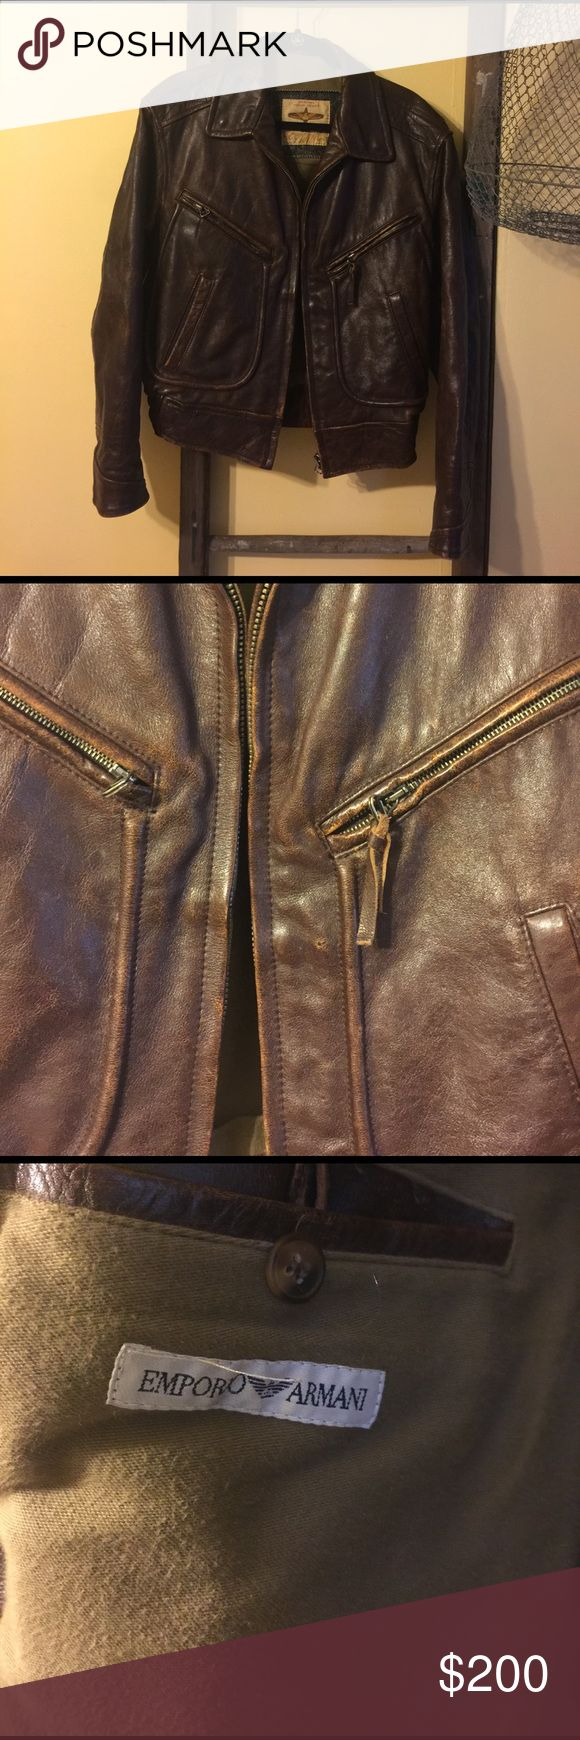 💙 Emporio Armani Leather Bomber 💙 Amazing Emporio Armani Leather Bomber in perfect shape, minus the missing leather pull on the left side zipper. Though the jacket states no size, it fits like a men's small or, perhaps, a woman's large. Not the jacket in second photo! Emporio Armani Jackets & Coats Bomber & Varsity